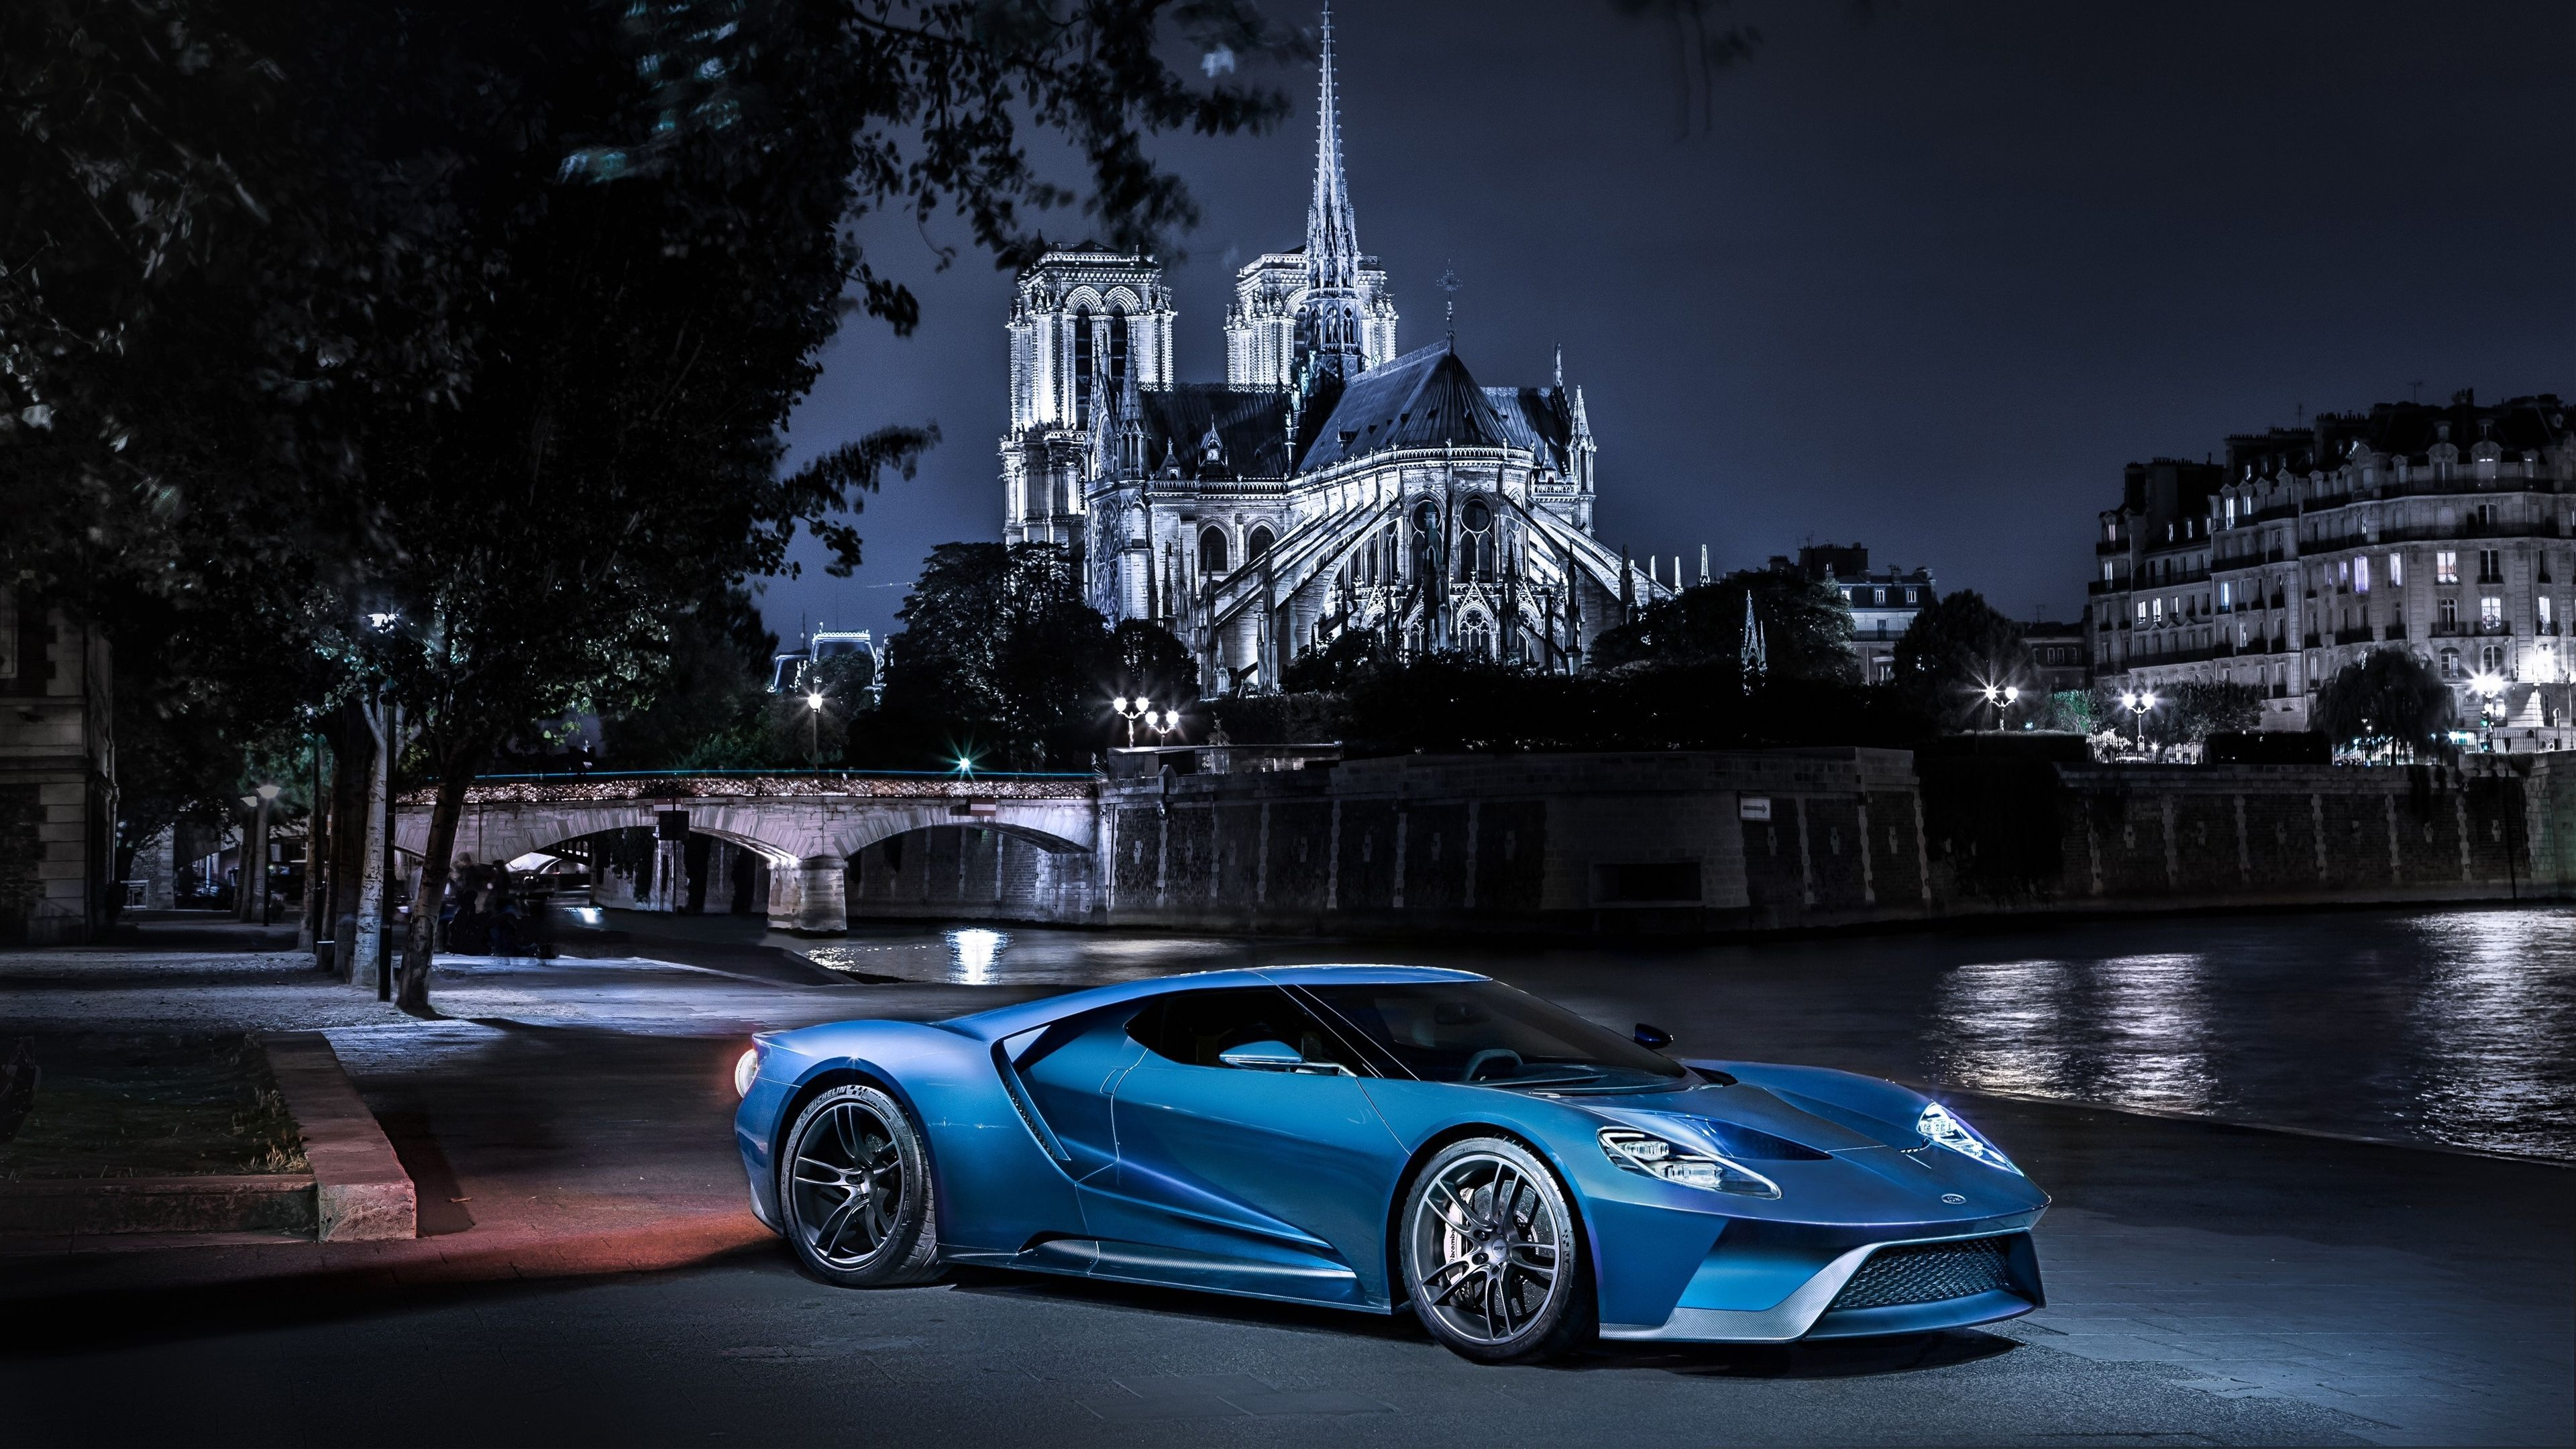 10 Most Popular Super Cars Wallpapers Hd Full Hd 1080p For Pc Desktop Car Wallpapers Ford Gt Hd Wallpapers Of Cars